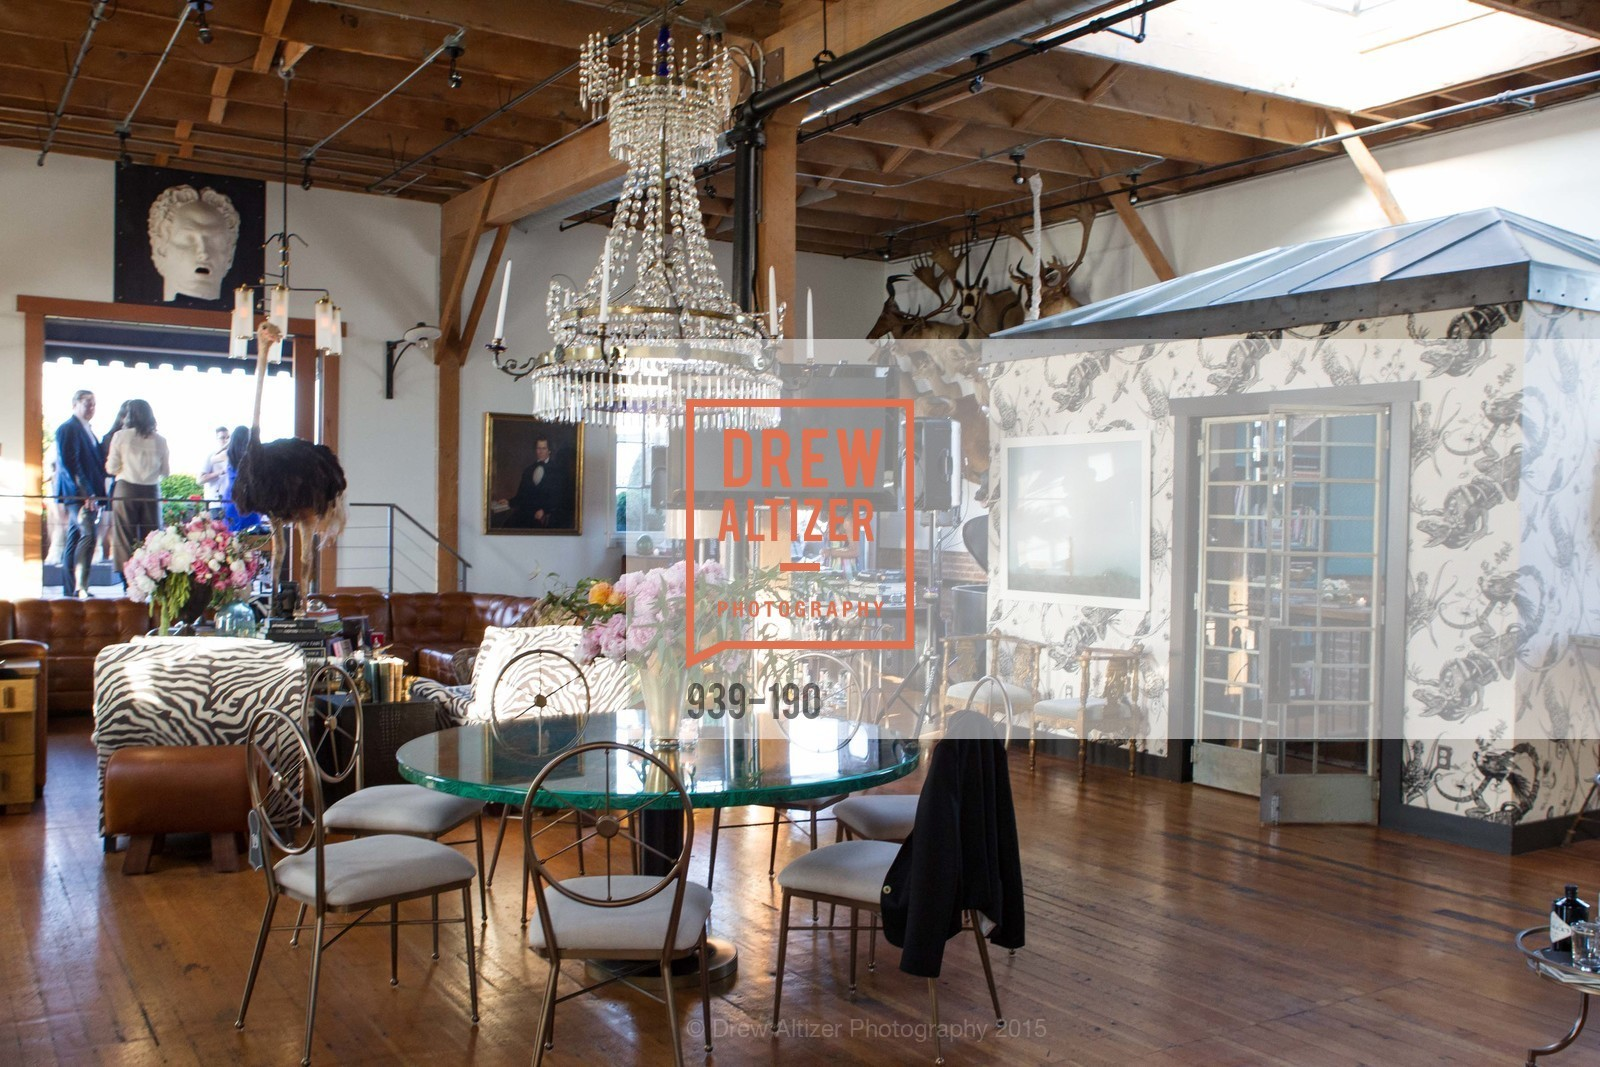 Extras, KEN FULK'S New Furniture Line Unveiling at THE MAGIC FACTORY, June 25th, 2015, Photo,Drew Altizer, Drew Altizer Photography, full-service agency, private events, San Francisco photographer, photographer california